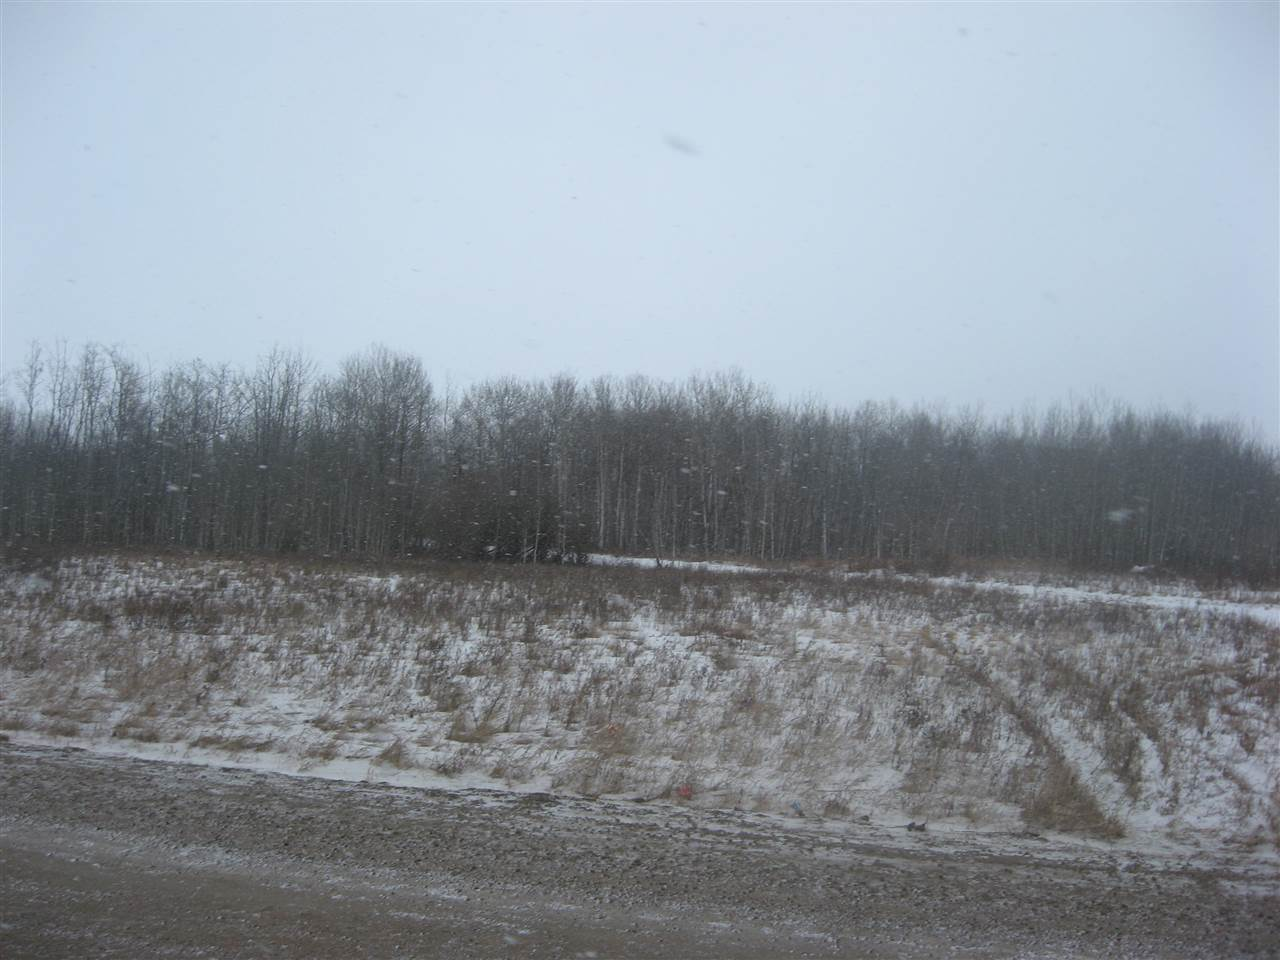 Excellent industrial development land in the town of Redwater next to the proposed industrial park 80 acres.